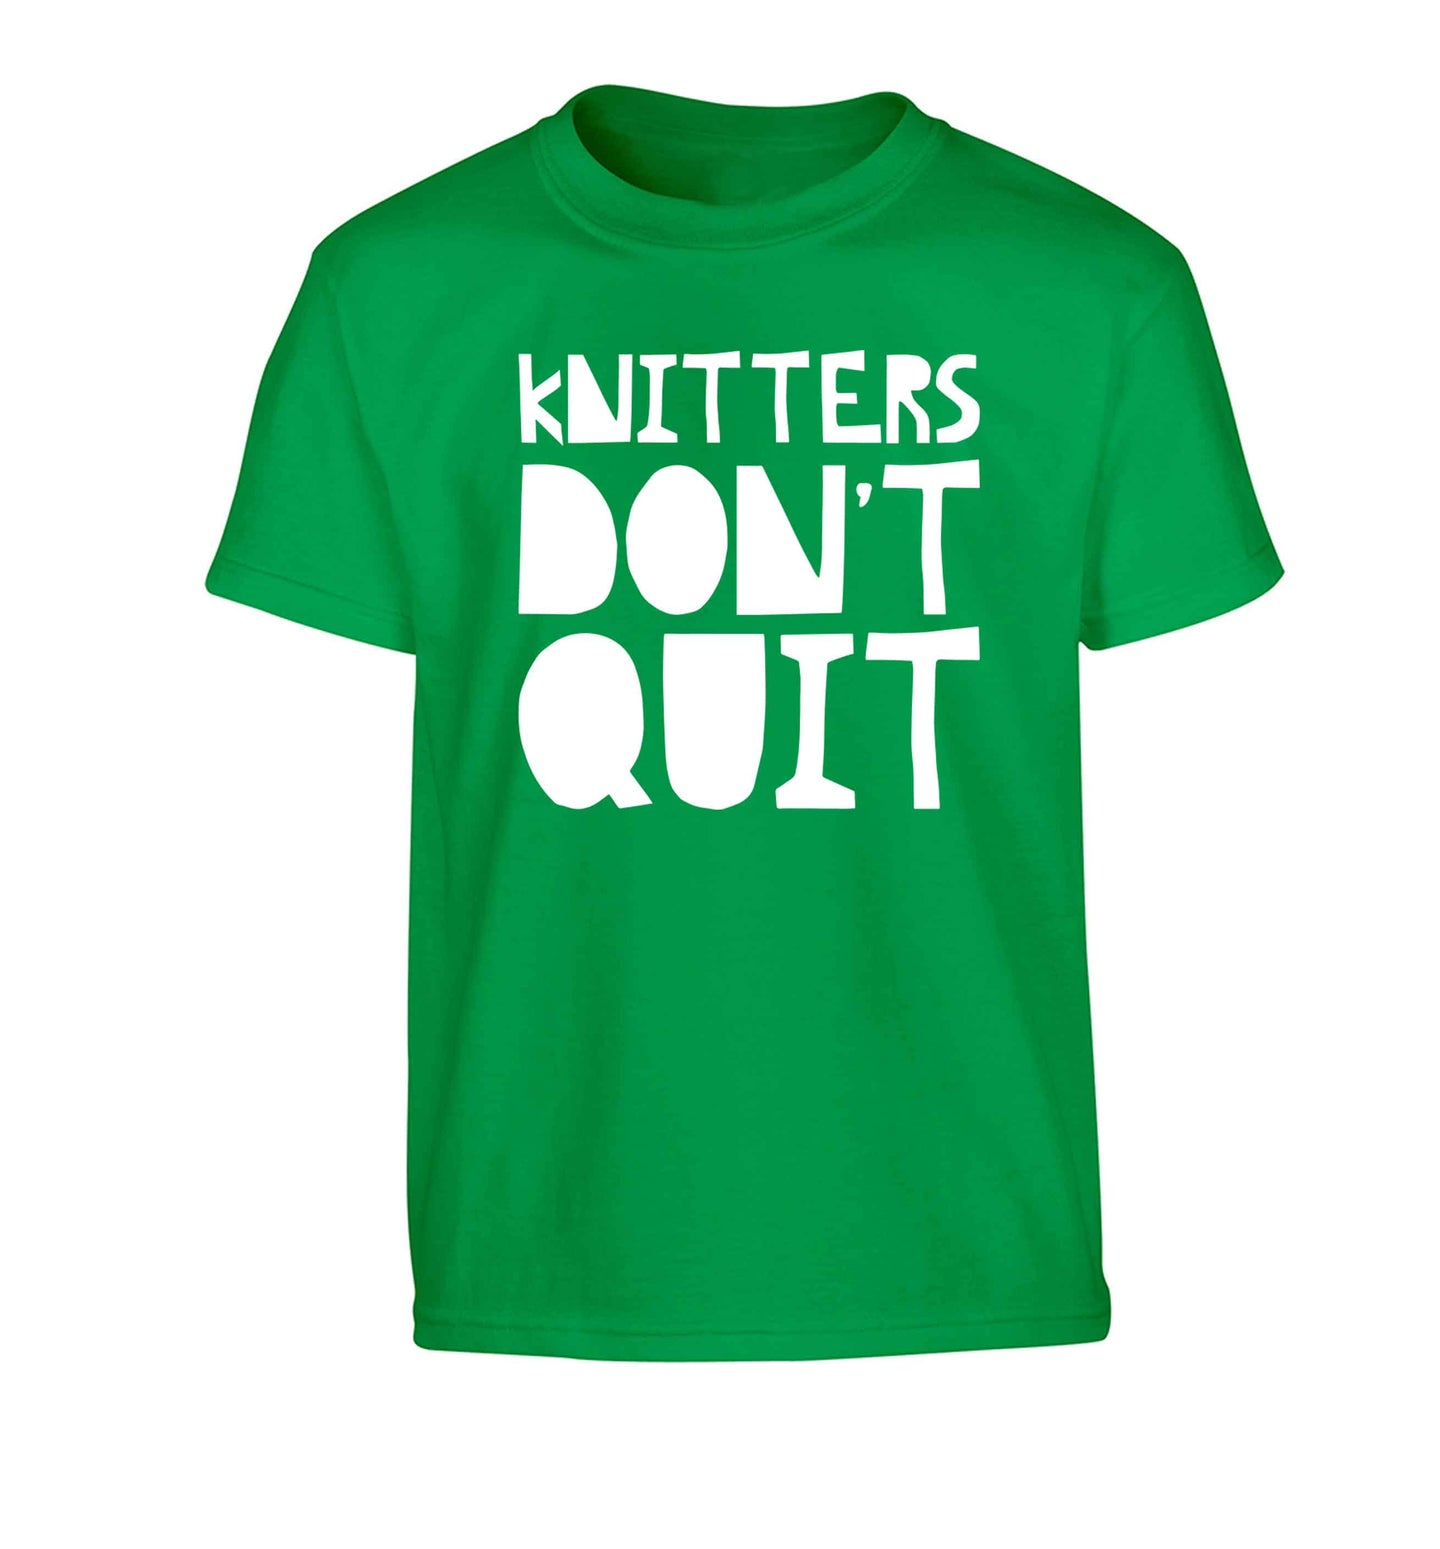 Knitters don't quit Children's green Tshirt 12-13 Years